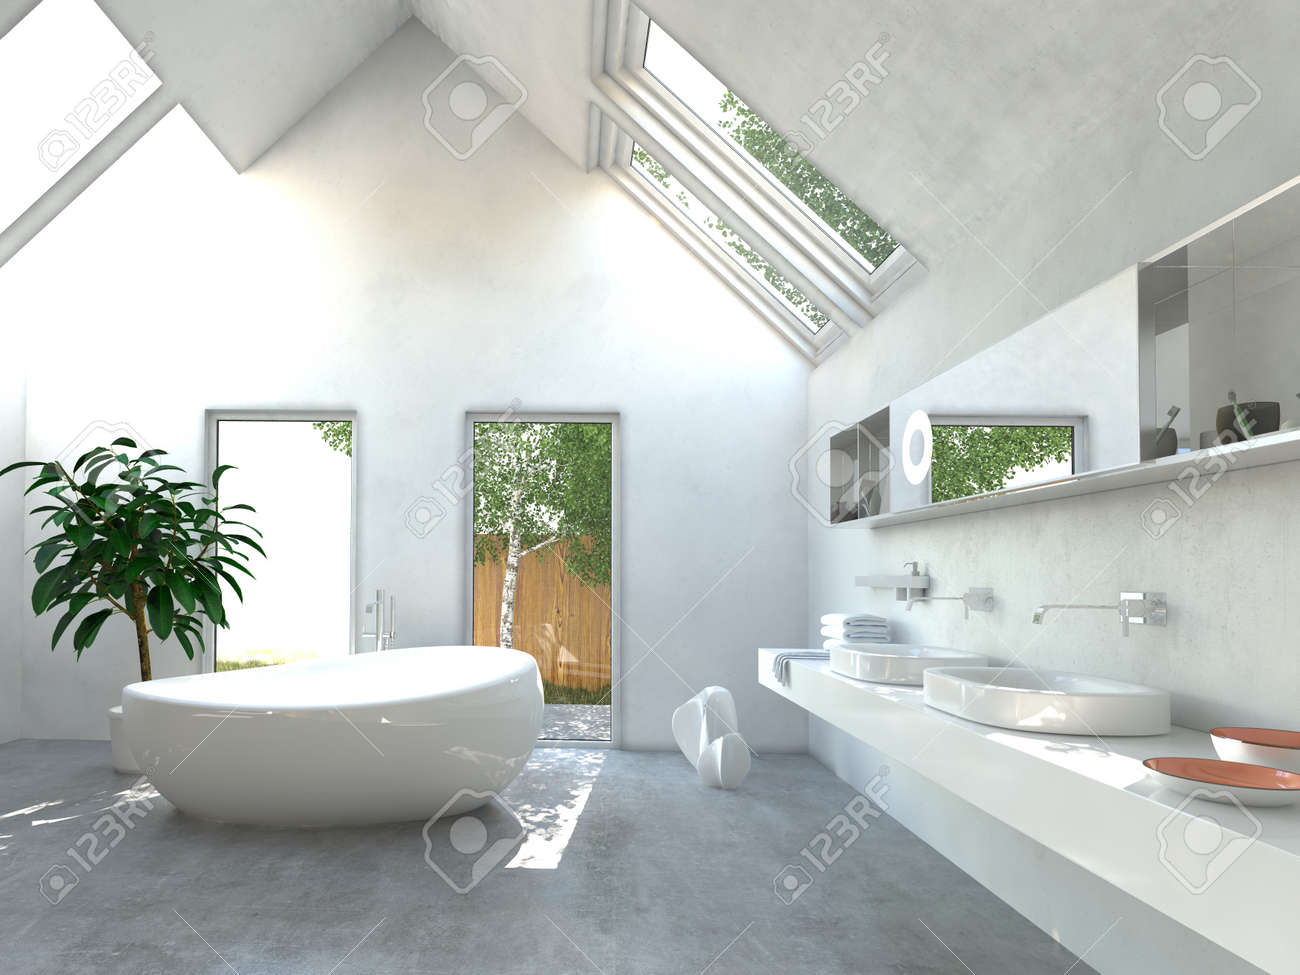 Modern light bathtub